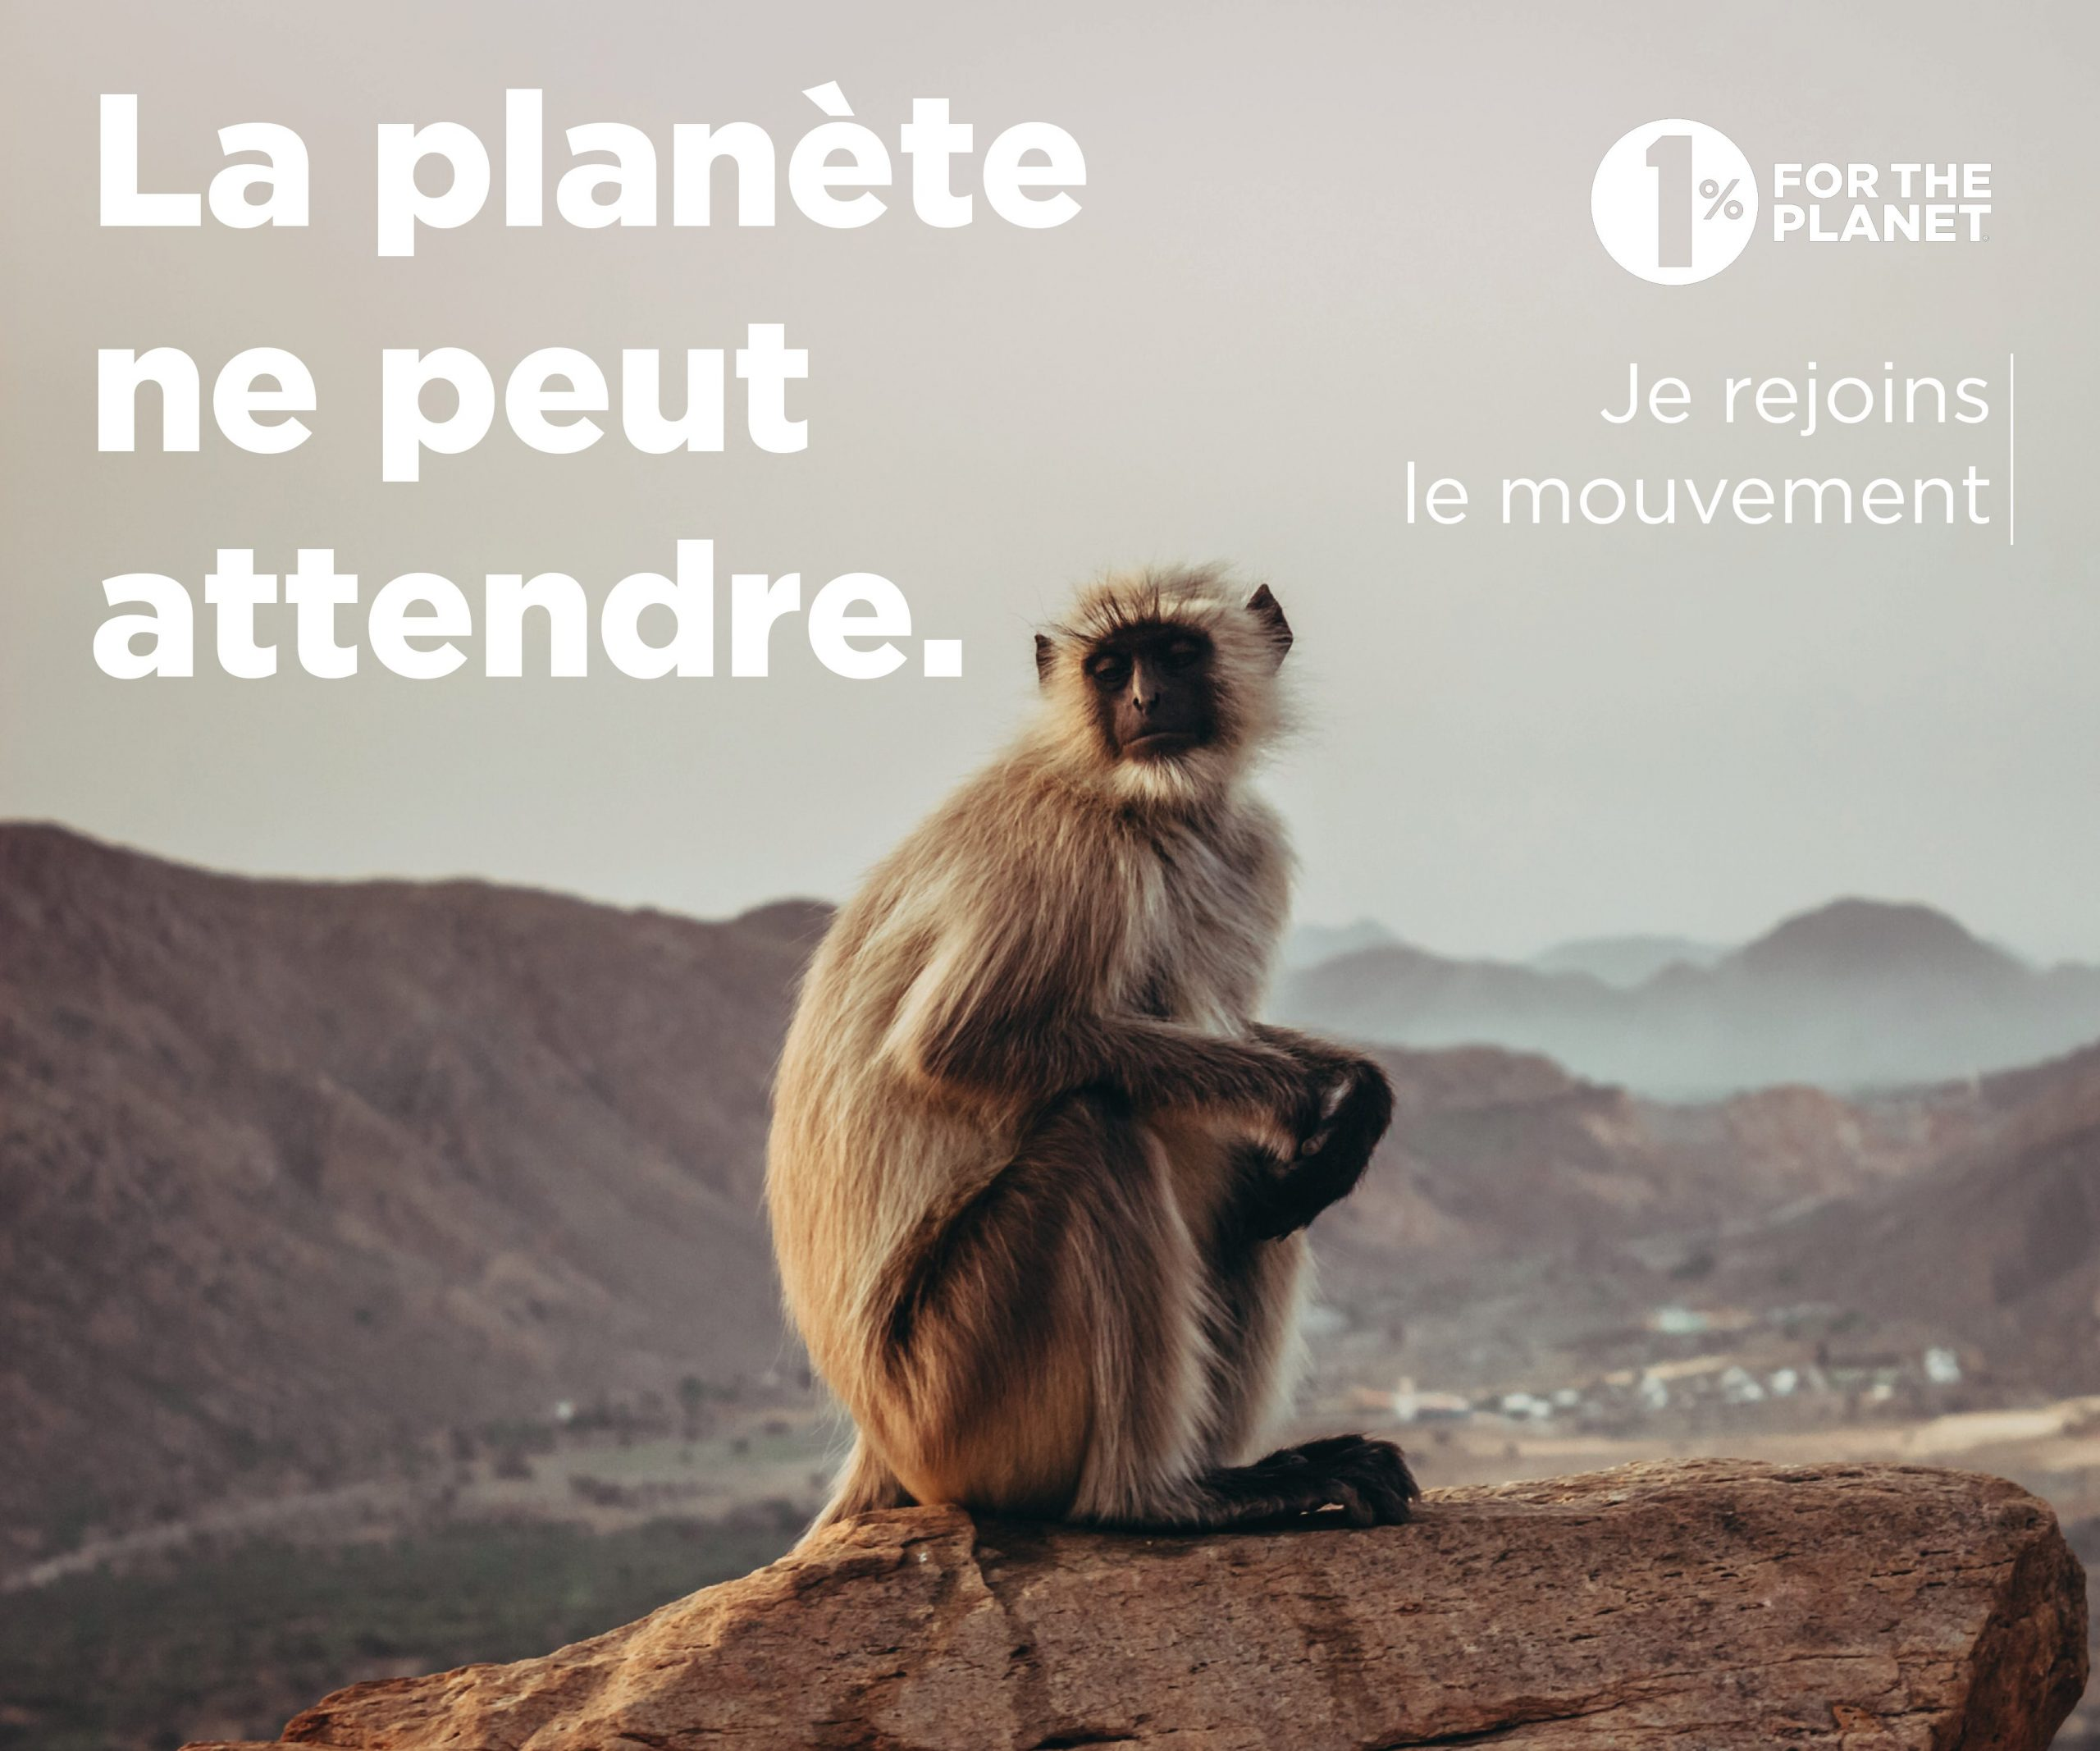 300x250 2 scaled - Pour nourrir demain rejoint 1% for the Planet